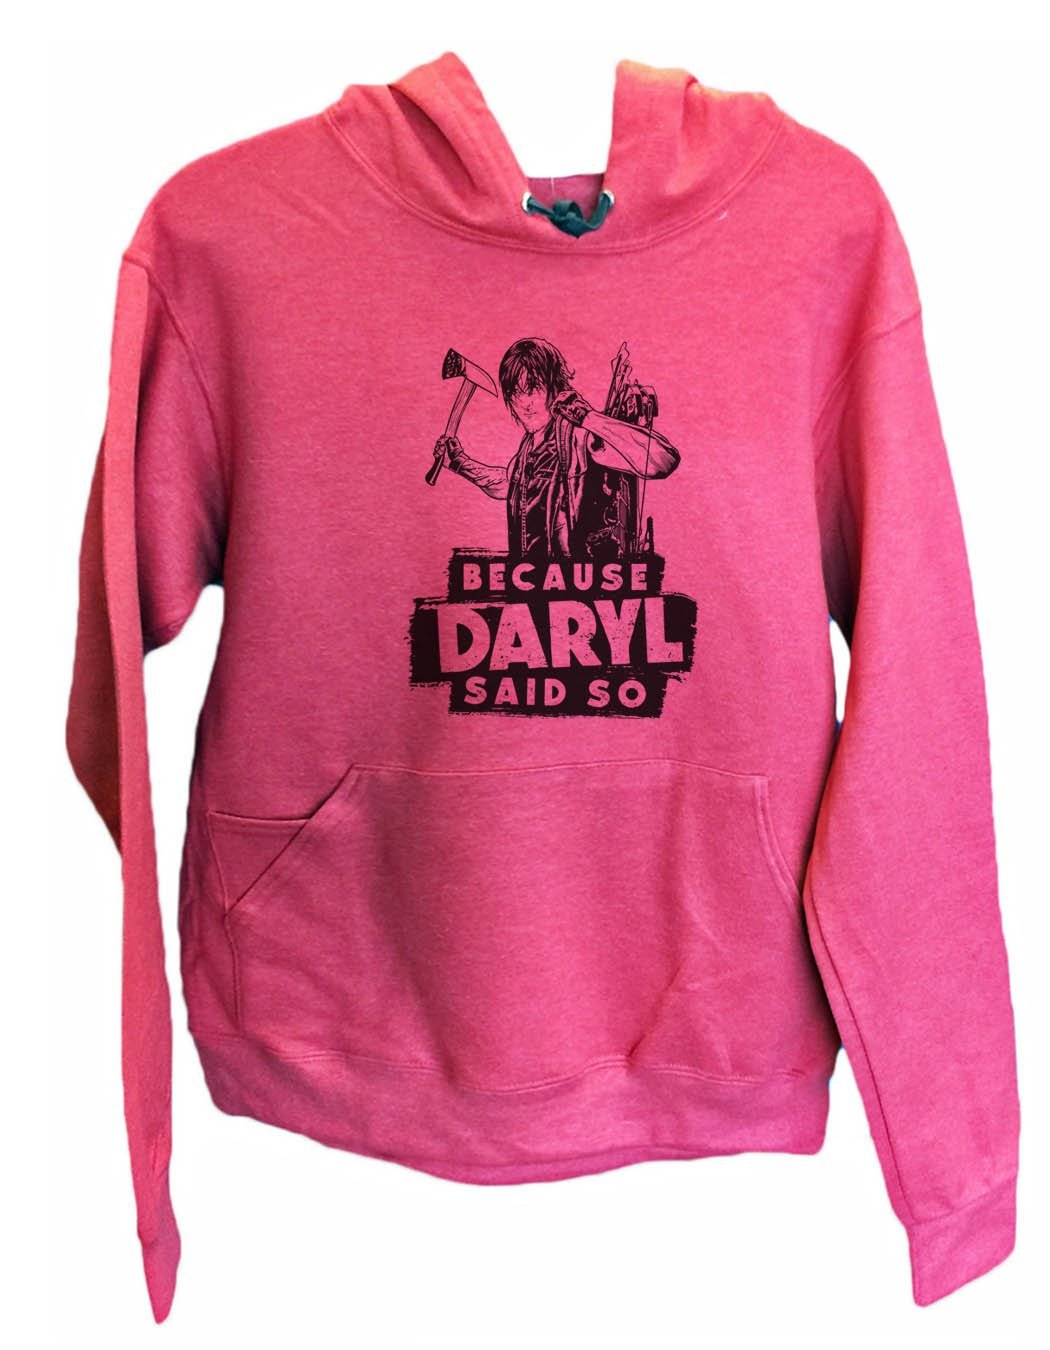 UNISEX HOODIE - Because Daryl Said So - FUNNY MENS AND WOMENS HOODED SWEATSHIRTS - 2310 Funny Shirt Small / Cranberry Red